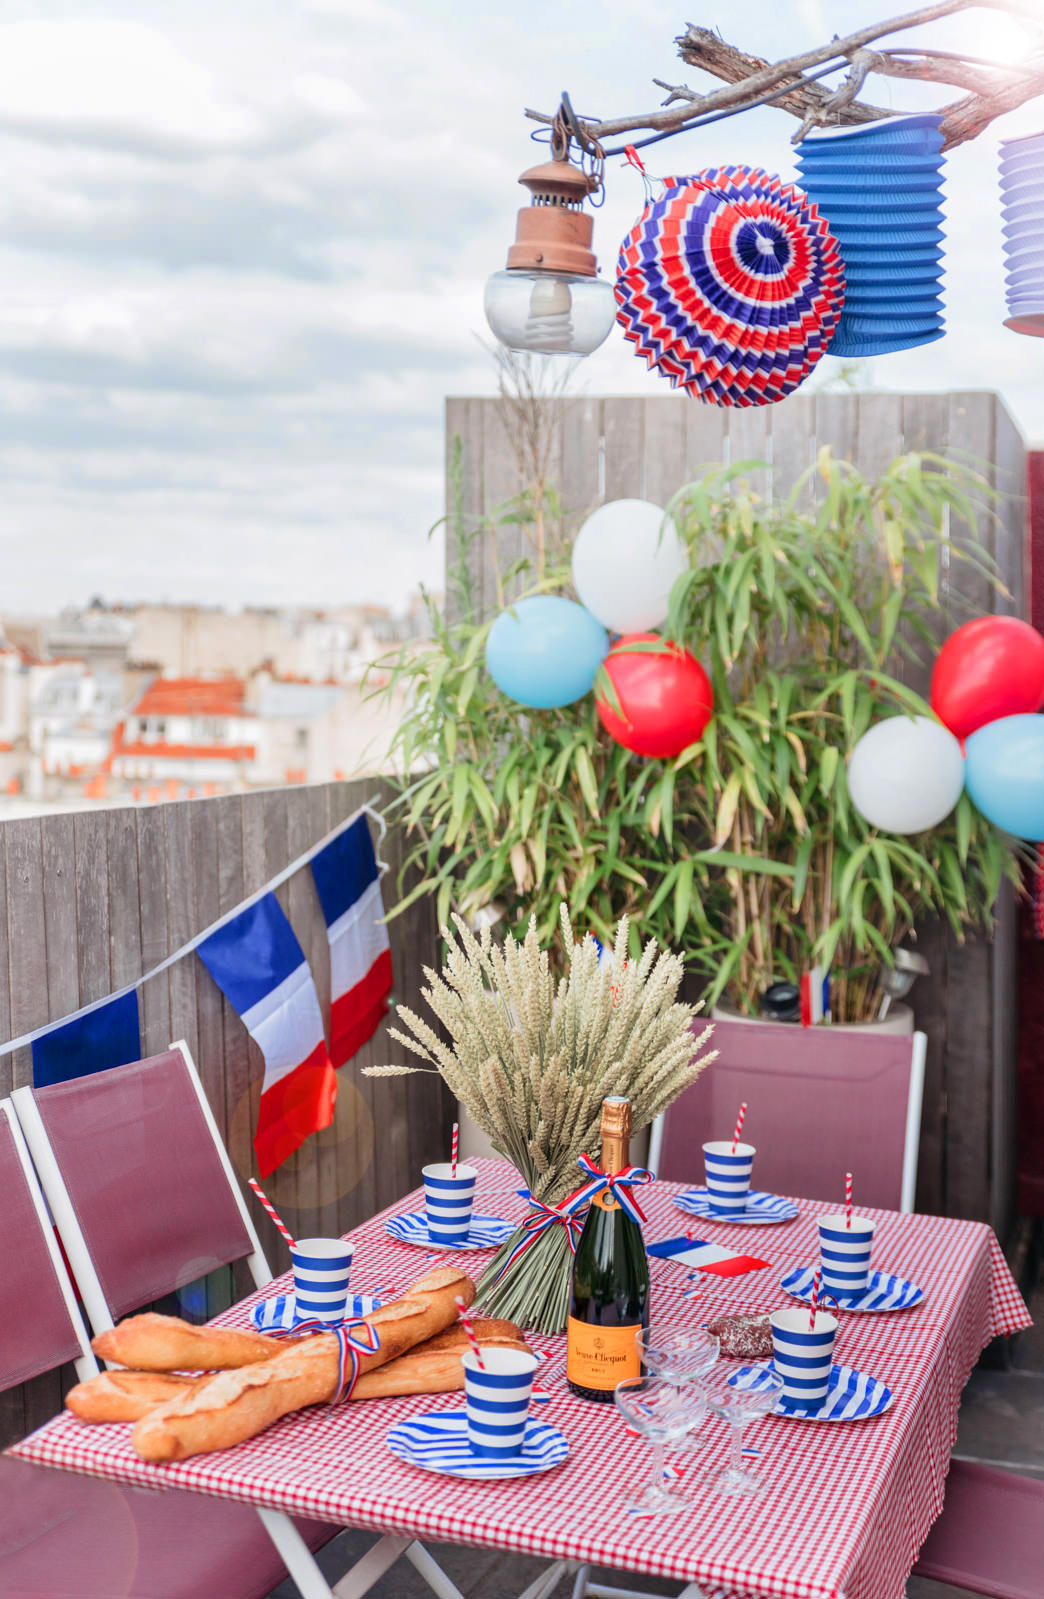 Blog-Mode-And-The-City-Lifestyle-Fete-14-juillet